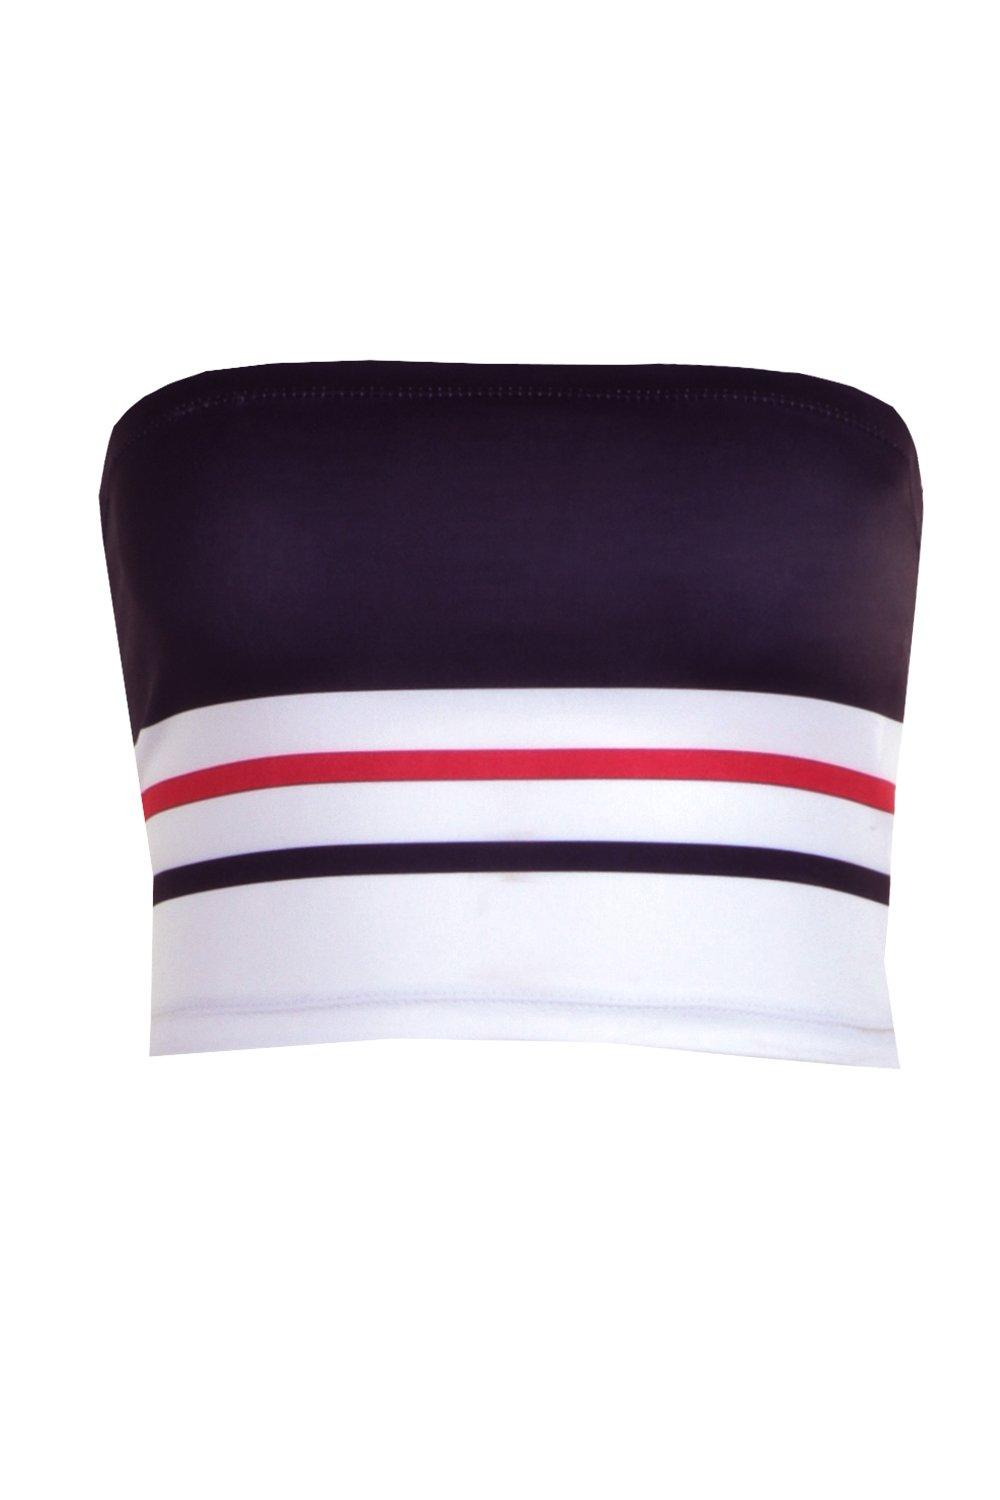 NEW-Boohoo-Womens-Petite-Stripe-Jersey-Bandeau-in-Polyester